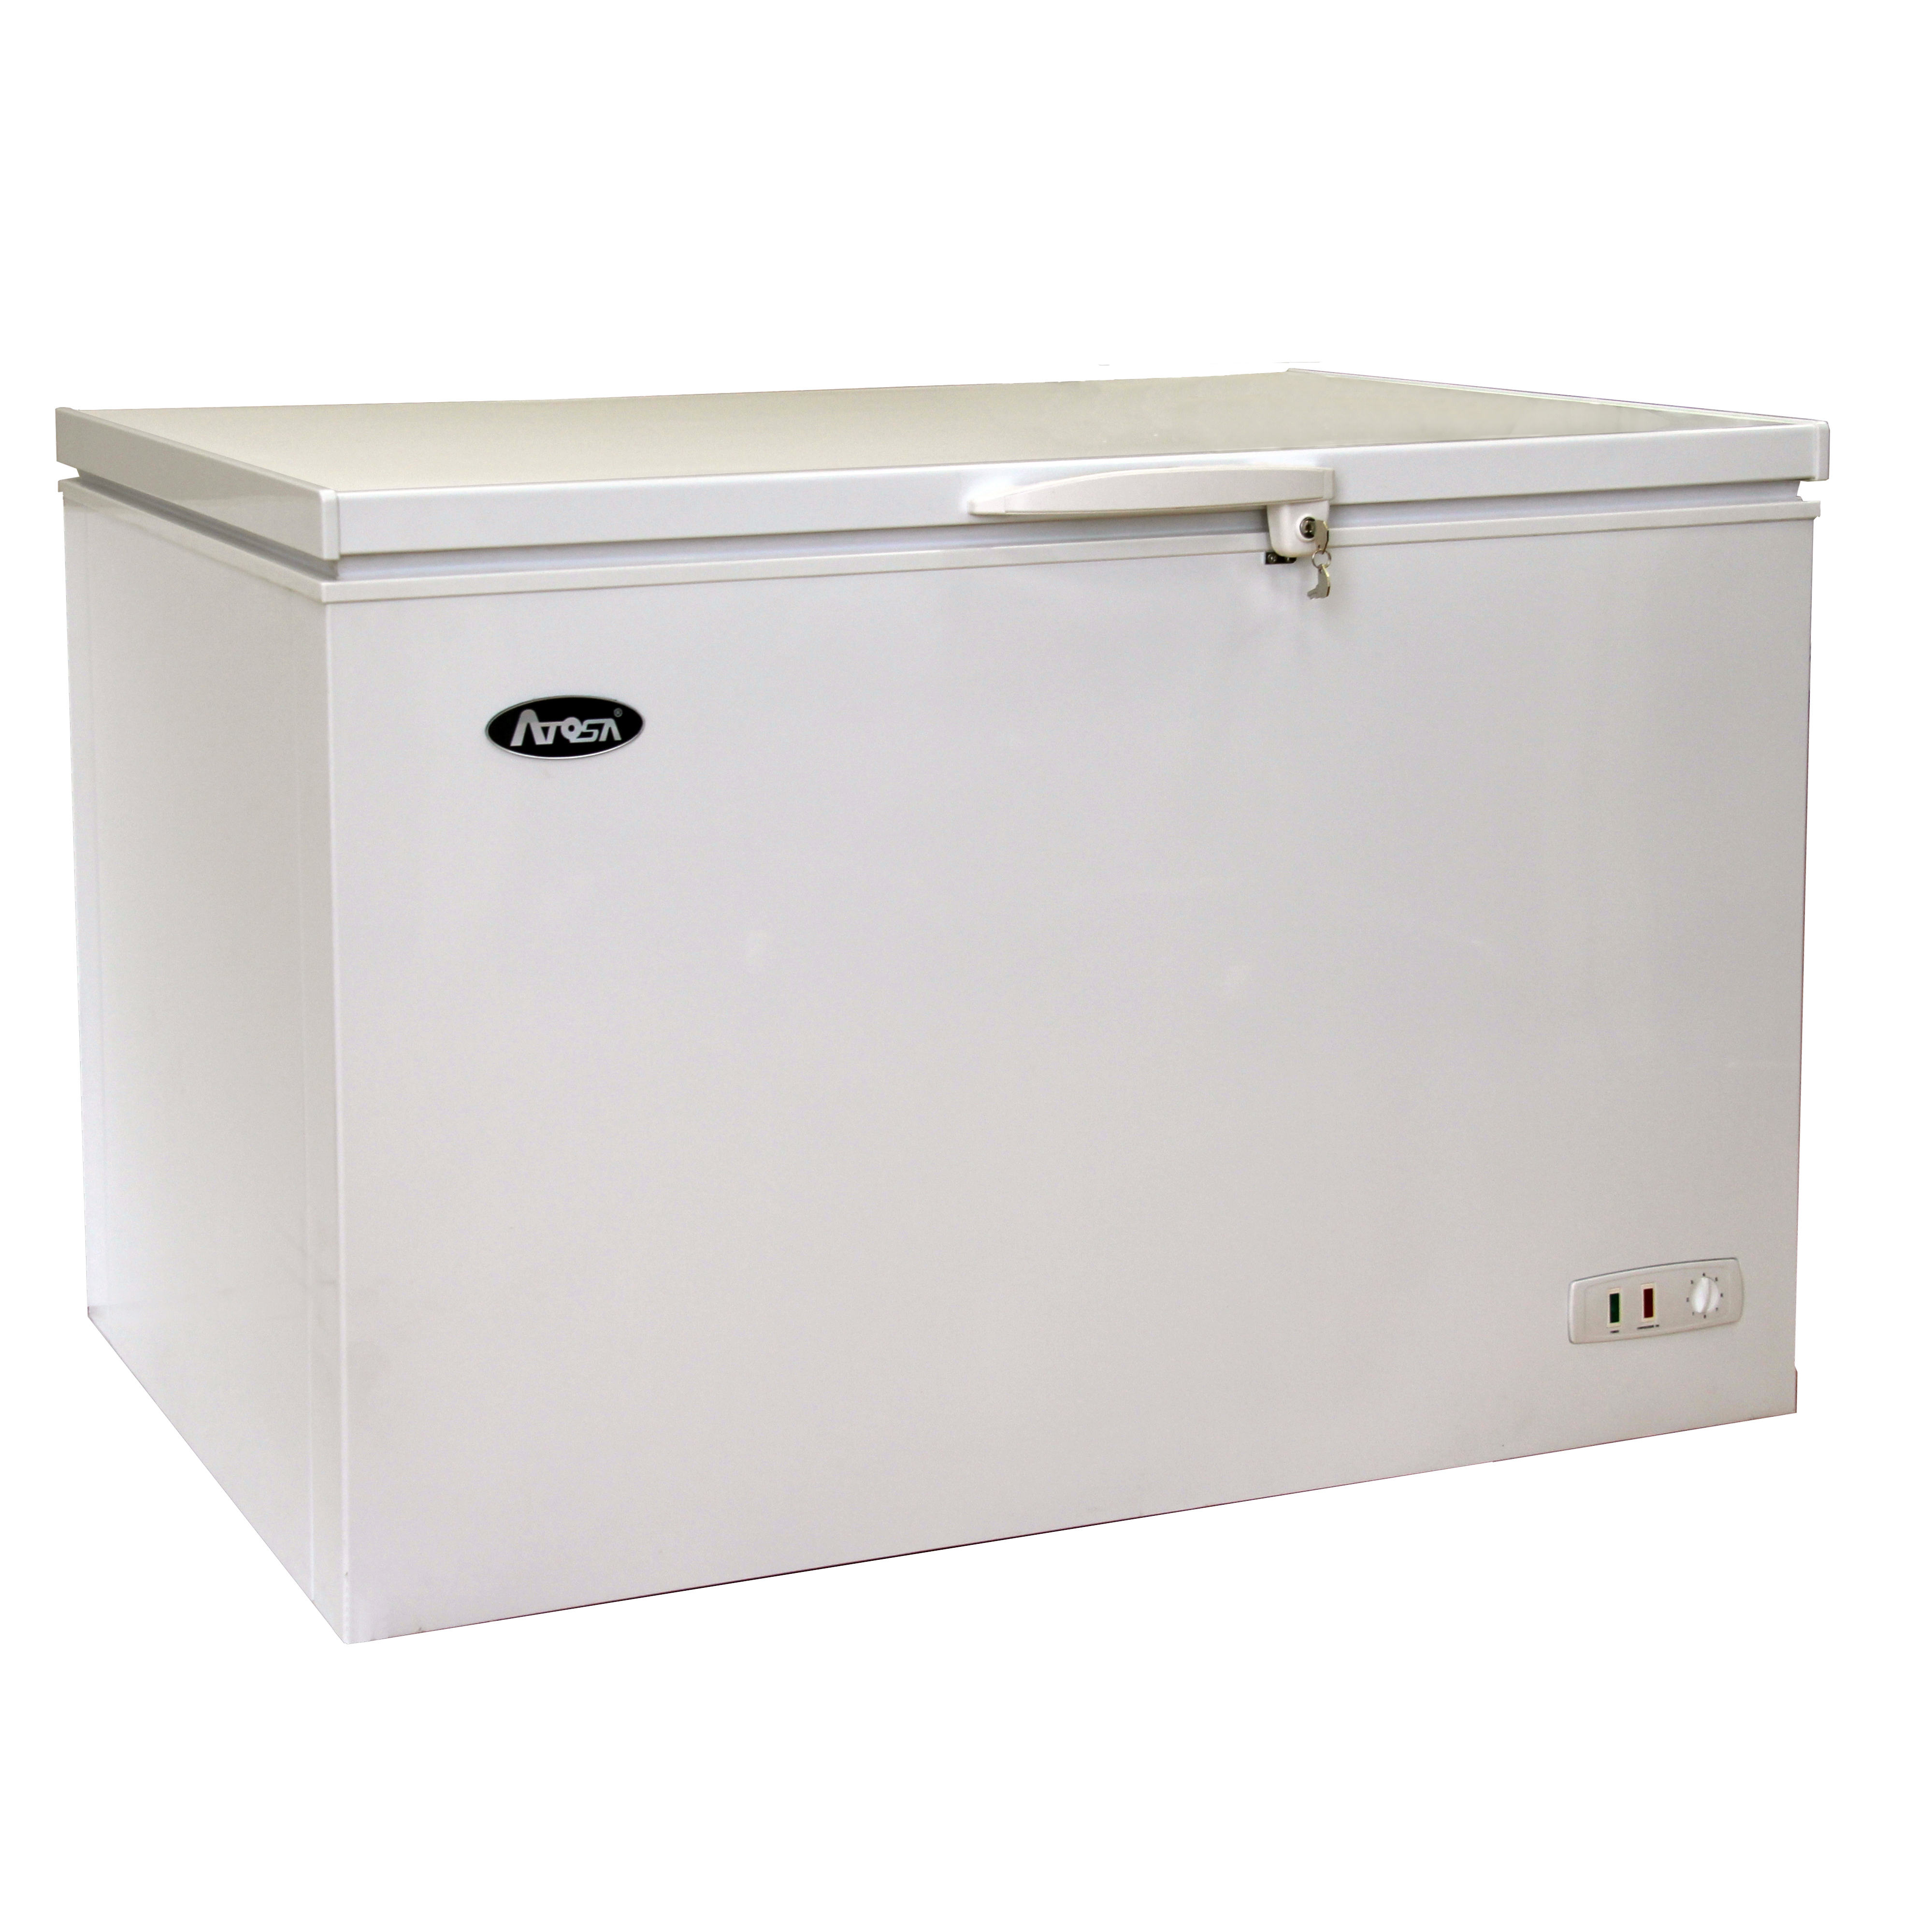 Atosa USA MWF9016 chest freezer